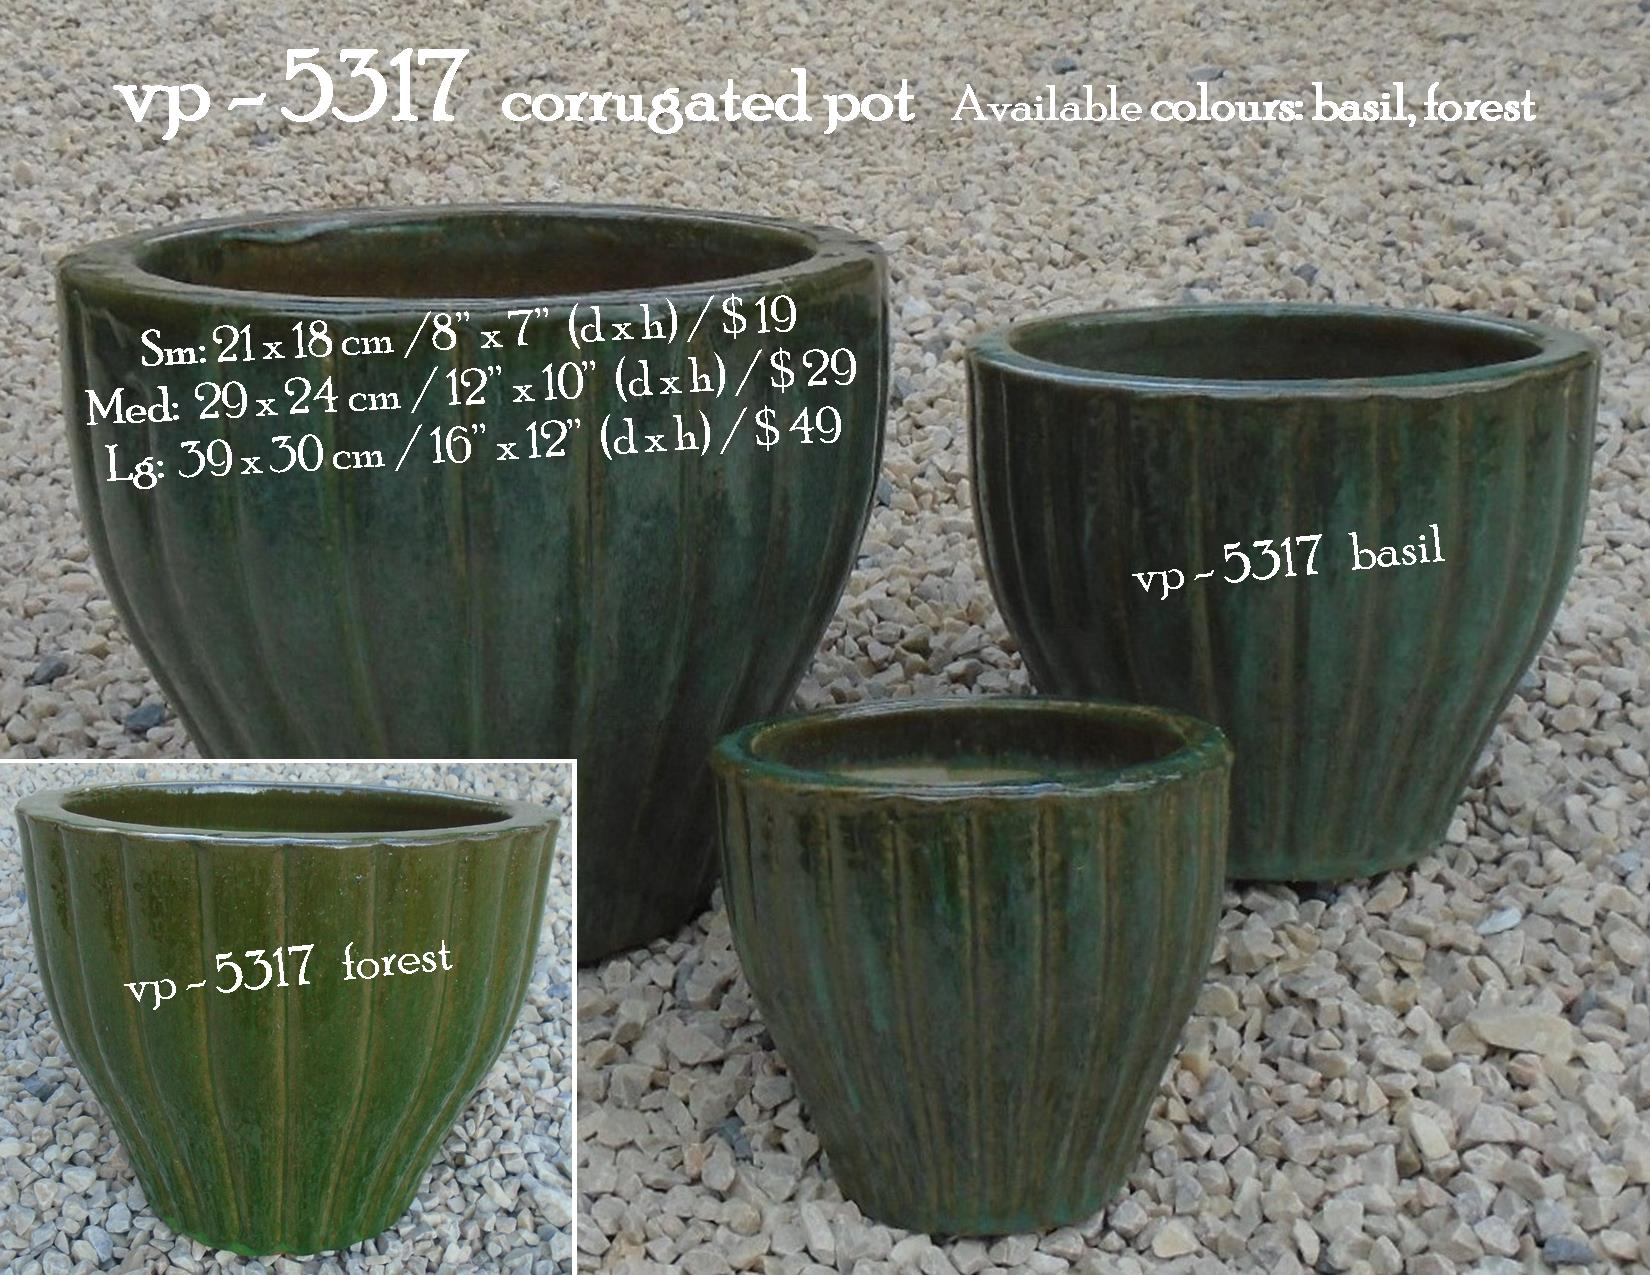 vp - 5317  corrugated pot